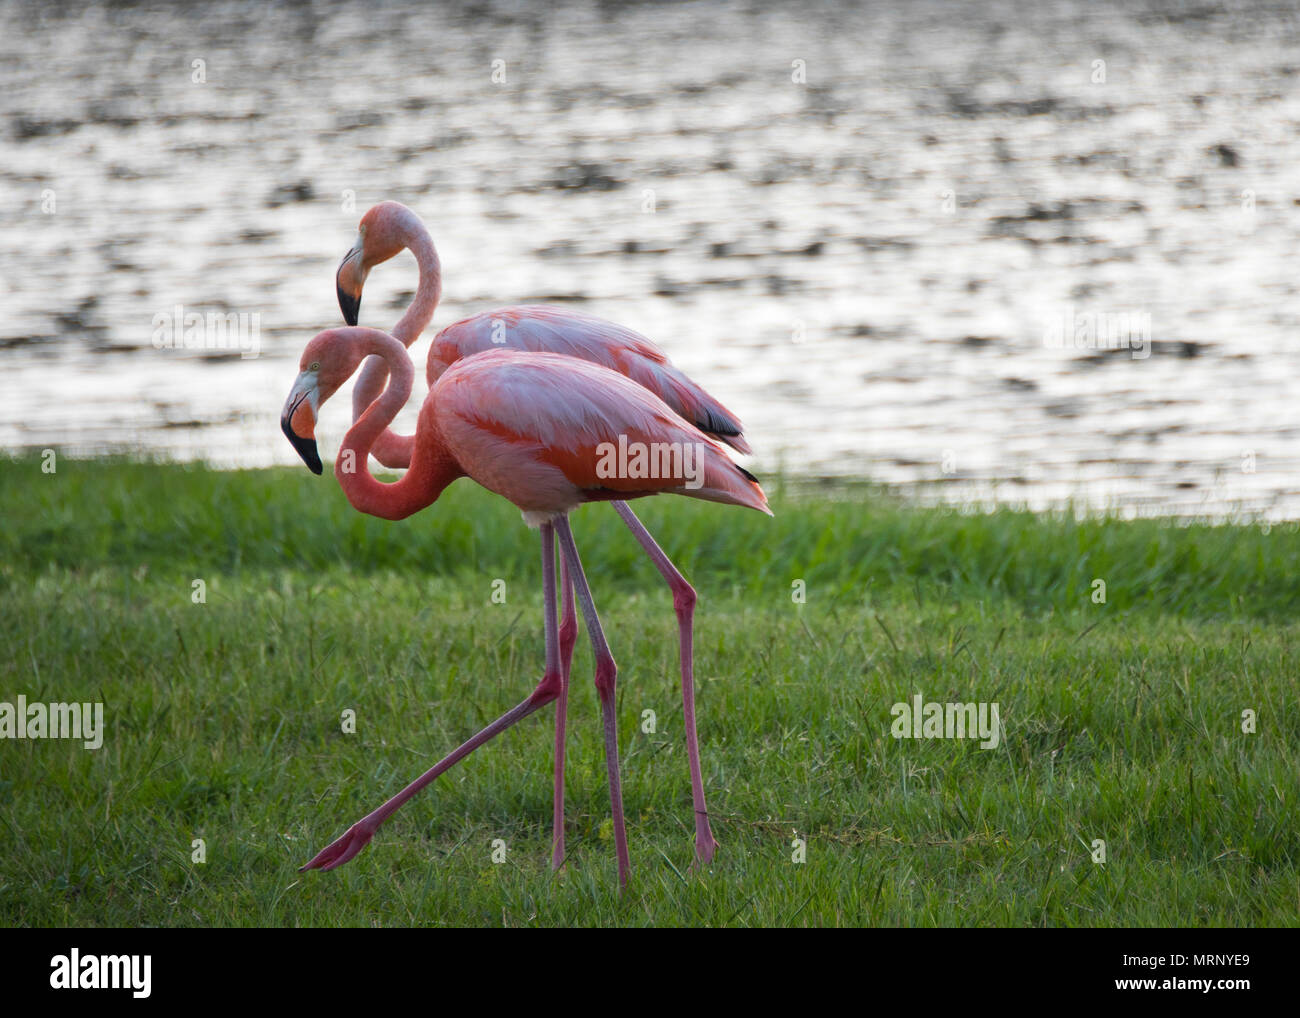 A pair of flamingos walk the bank of Weekly Pond June 23 at Eglin Air Force Base, Fla. According to a Jackson Guard biologist, the flamingos may be in the area because they were caught in a storm or seeking shelter from a weather front.(U.S. Air Force photo/Ilka Cole) - Stock Image